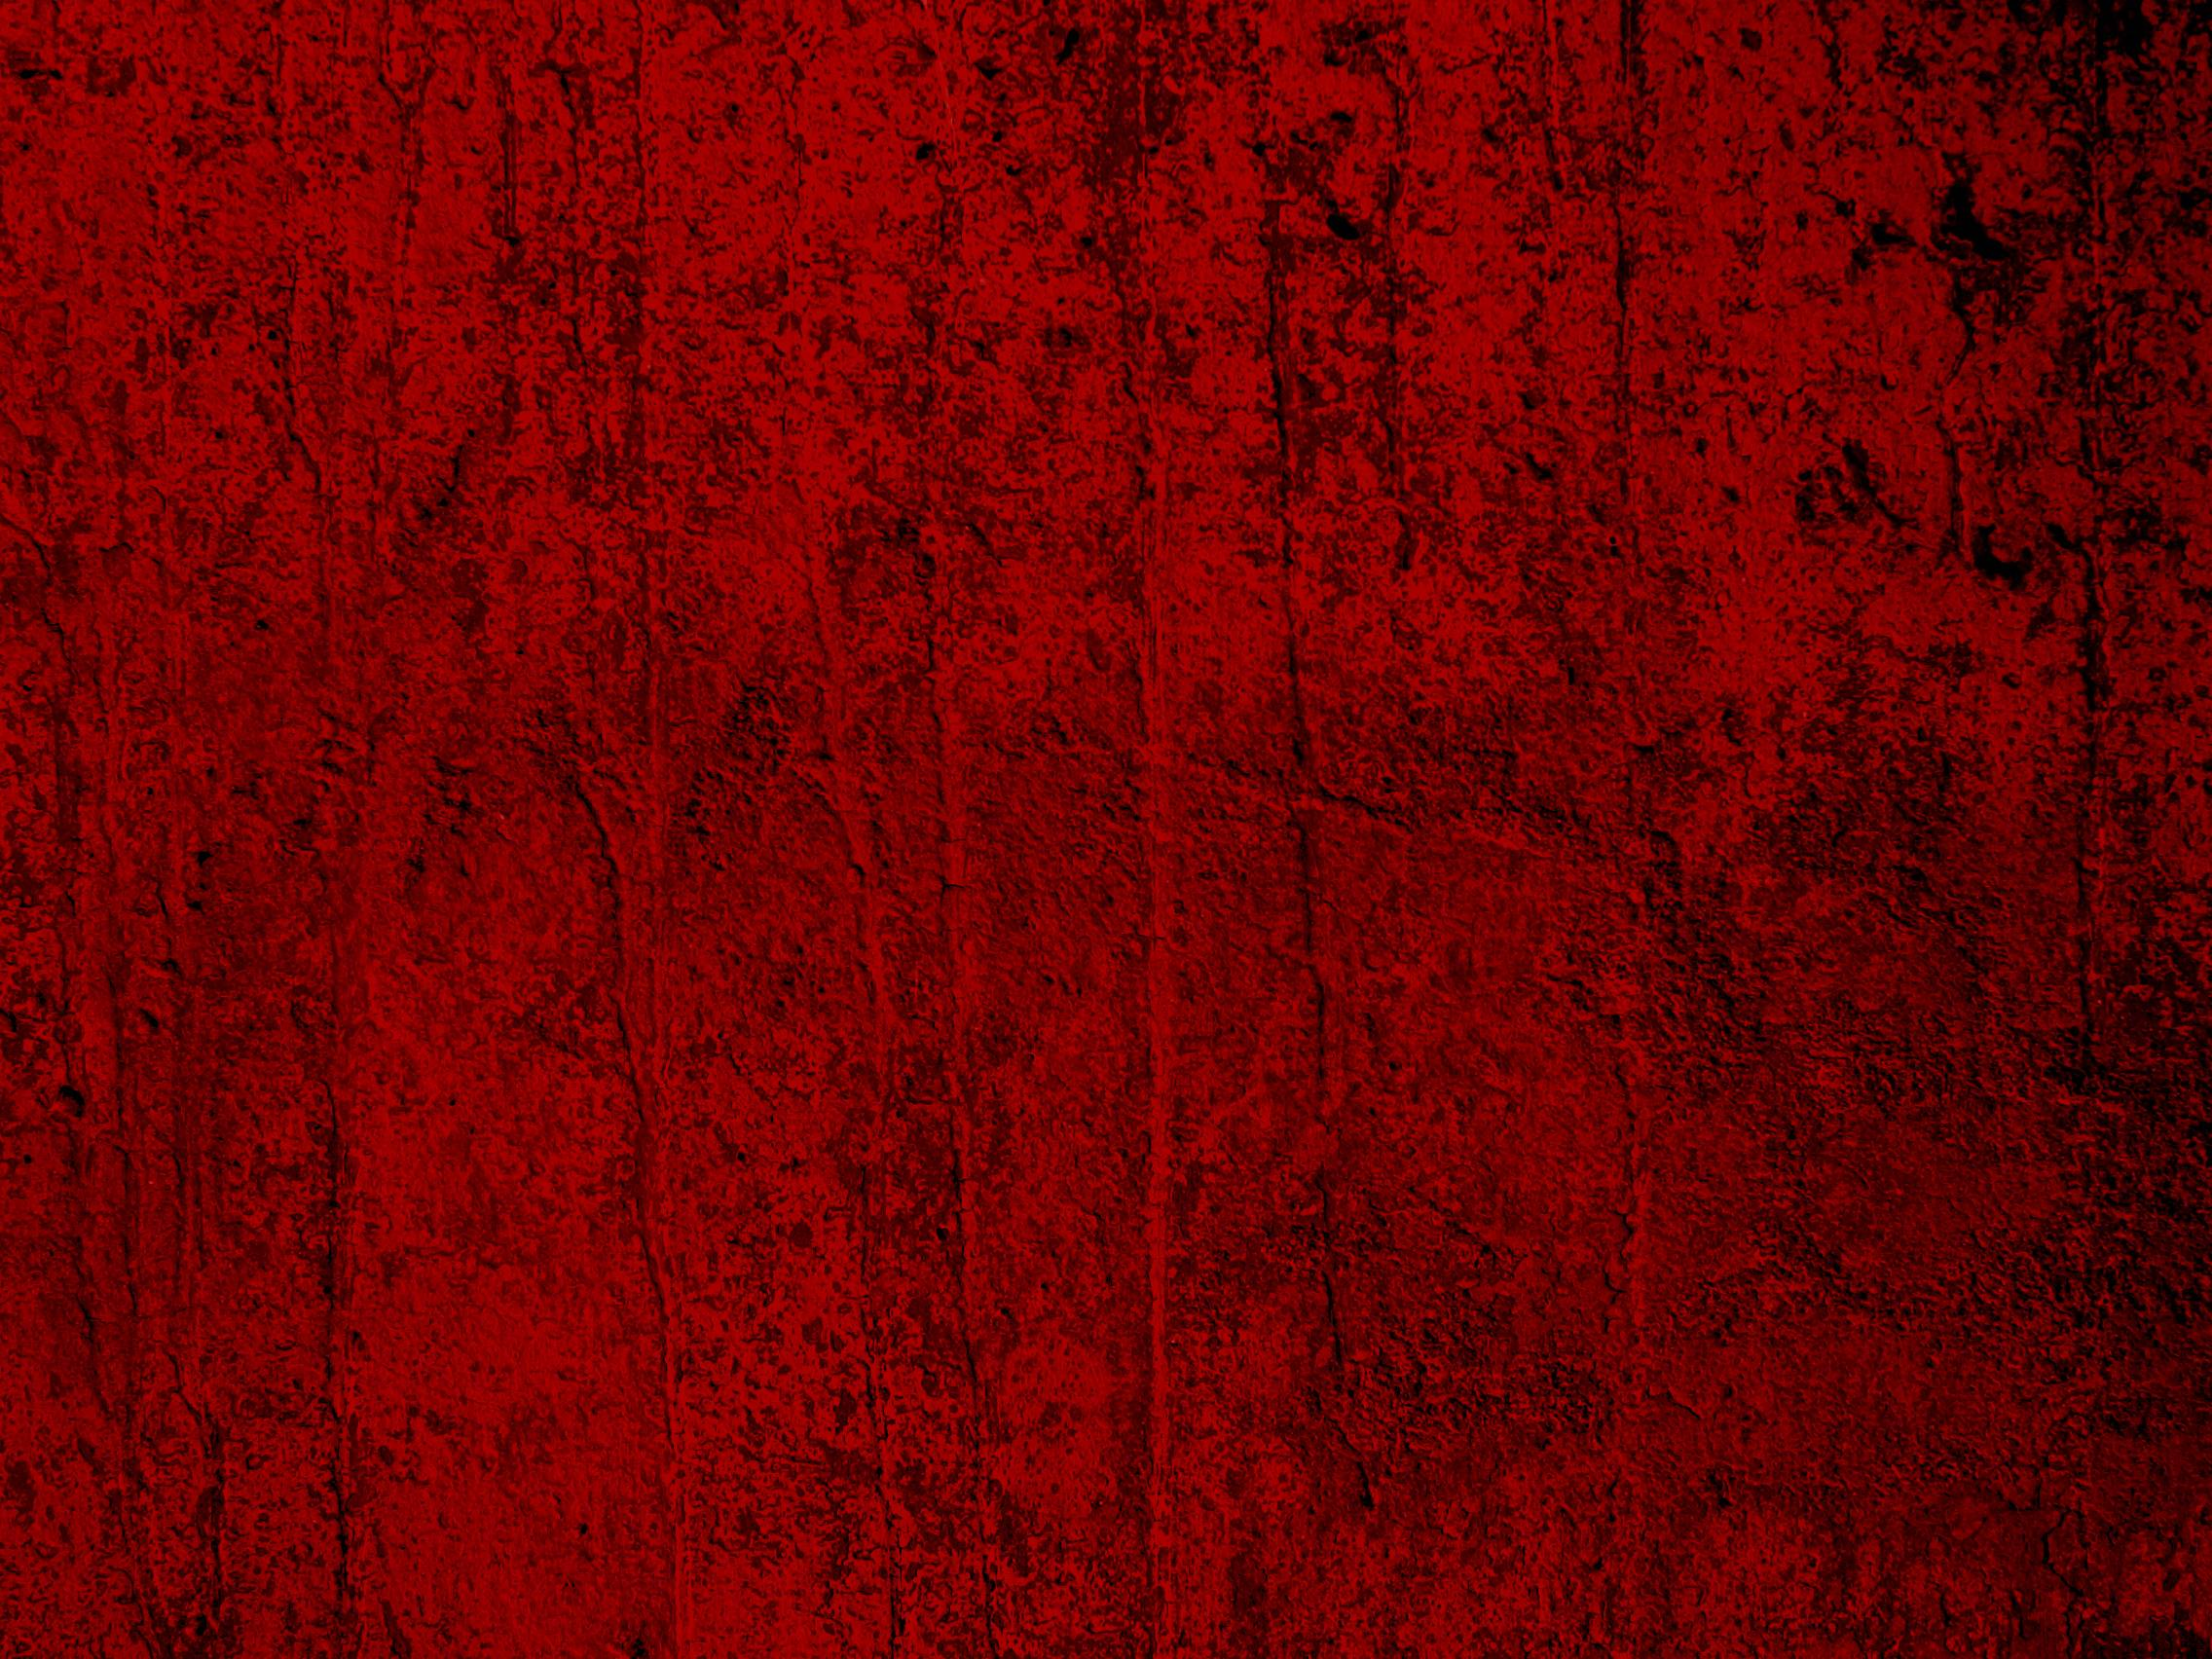 Red Texture Wallpapers - Top Free Red Texture Backgrounds - WallpaperAccess